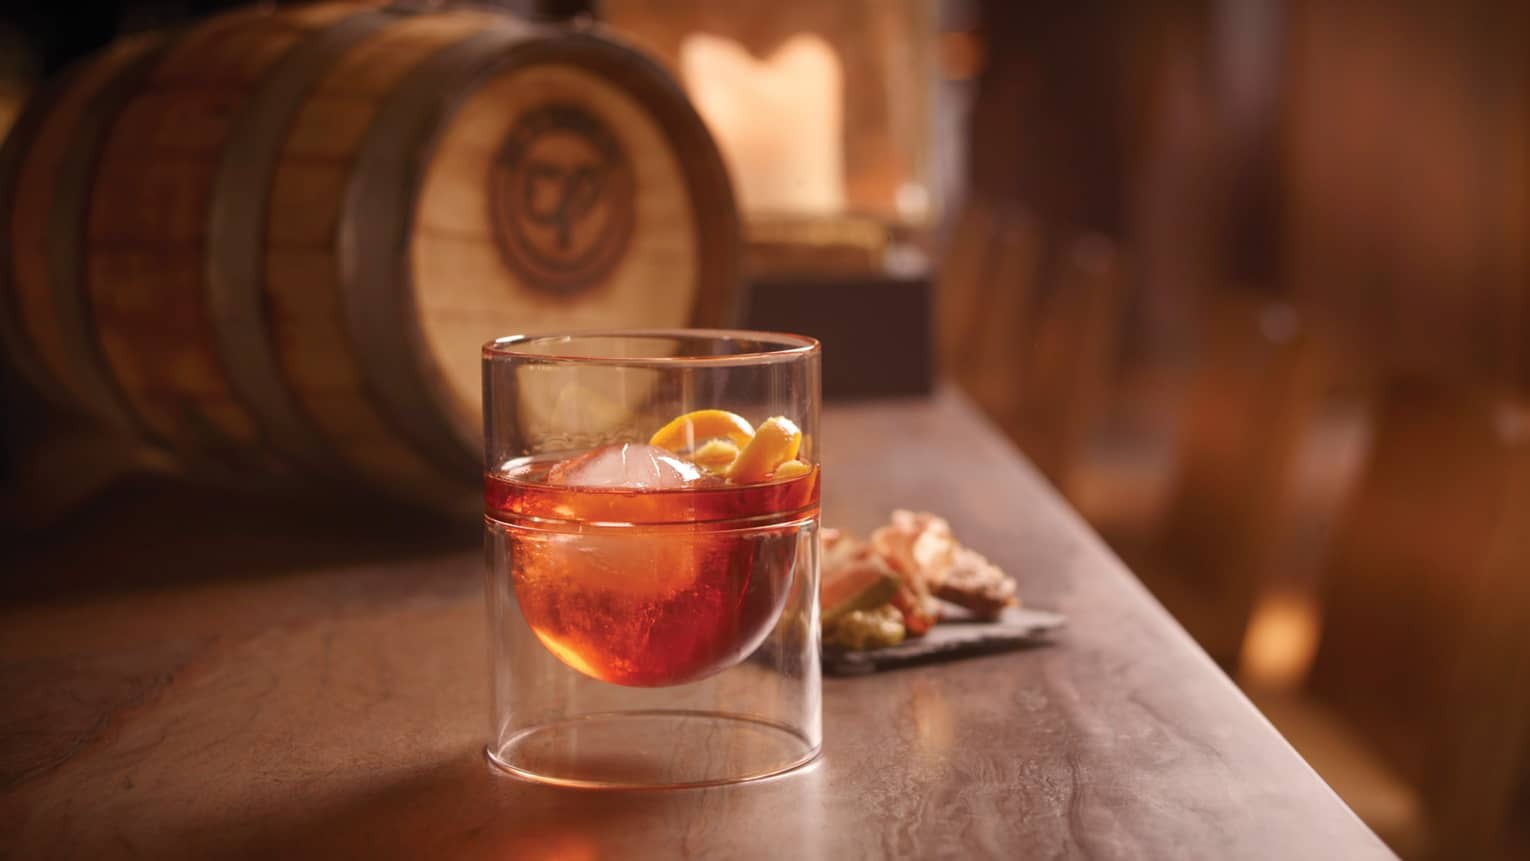 Neo Negroni cocktail in glass with ice, orange peels on wood bar by barrel